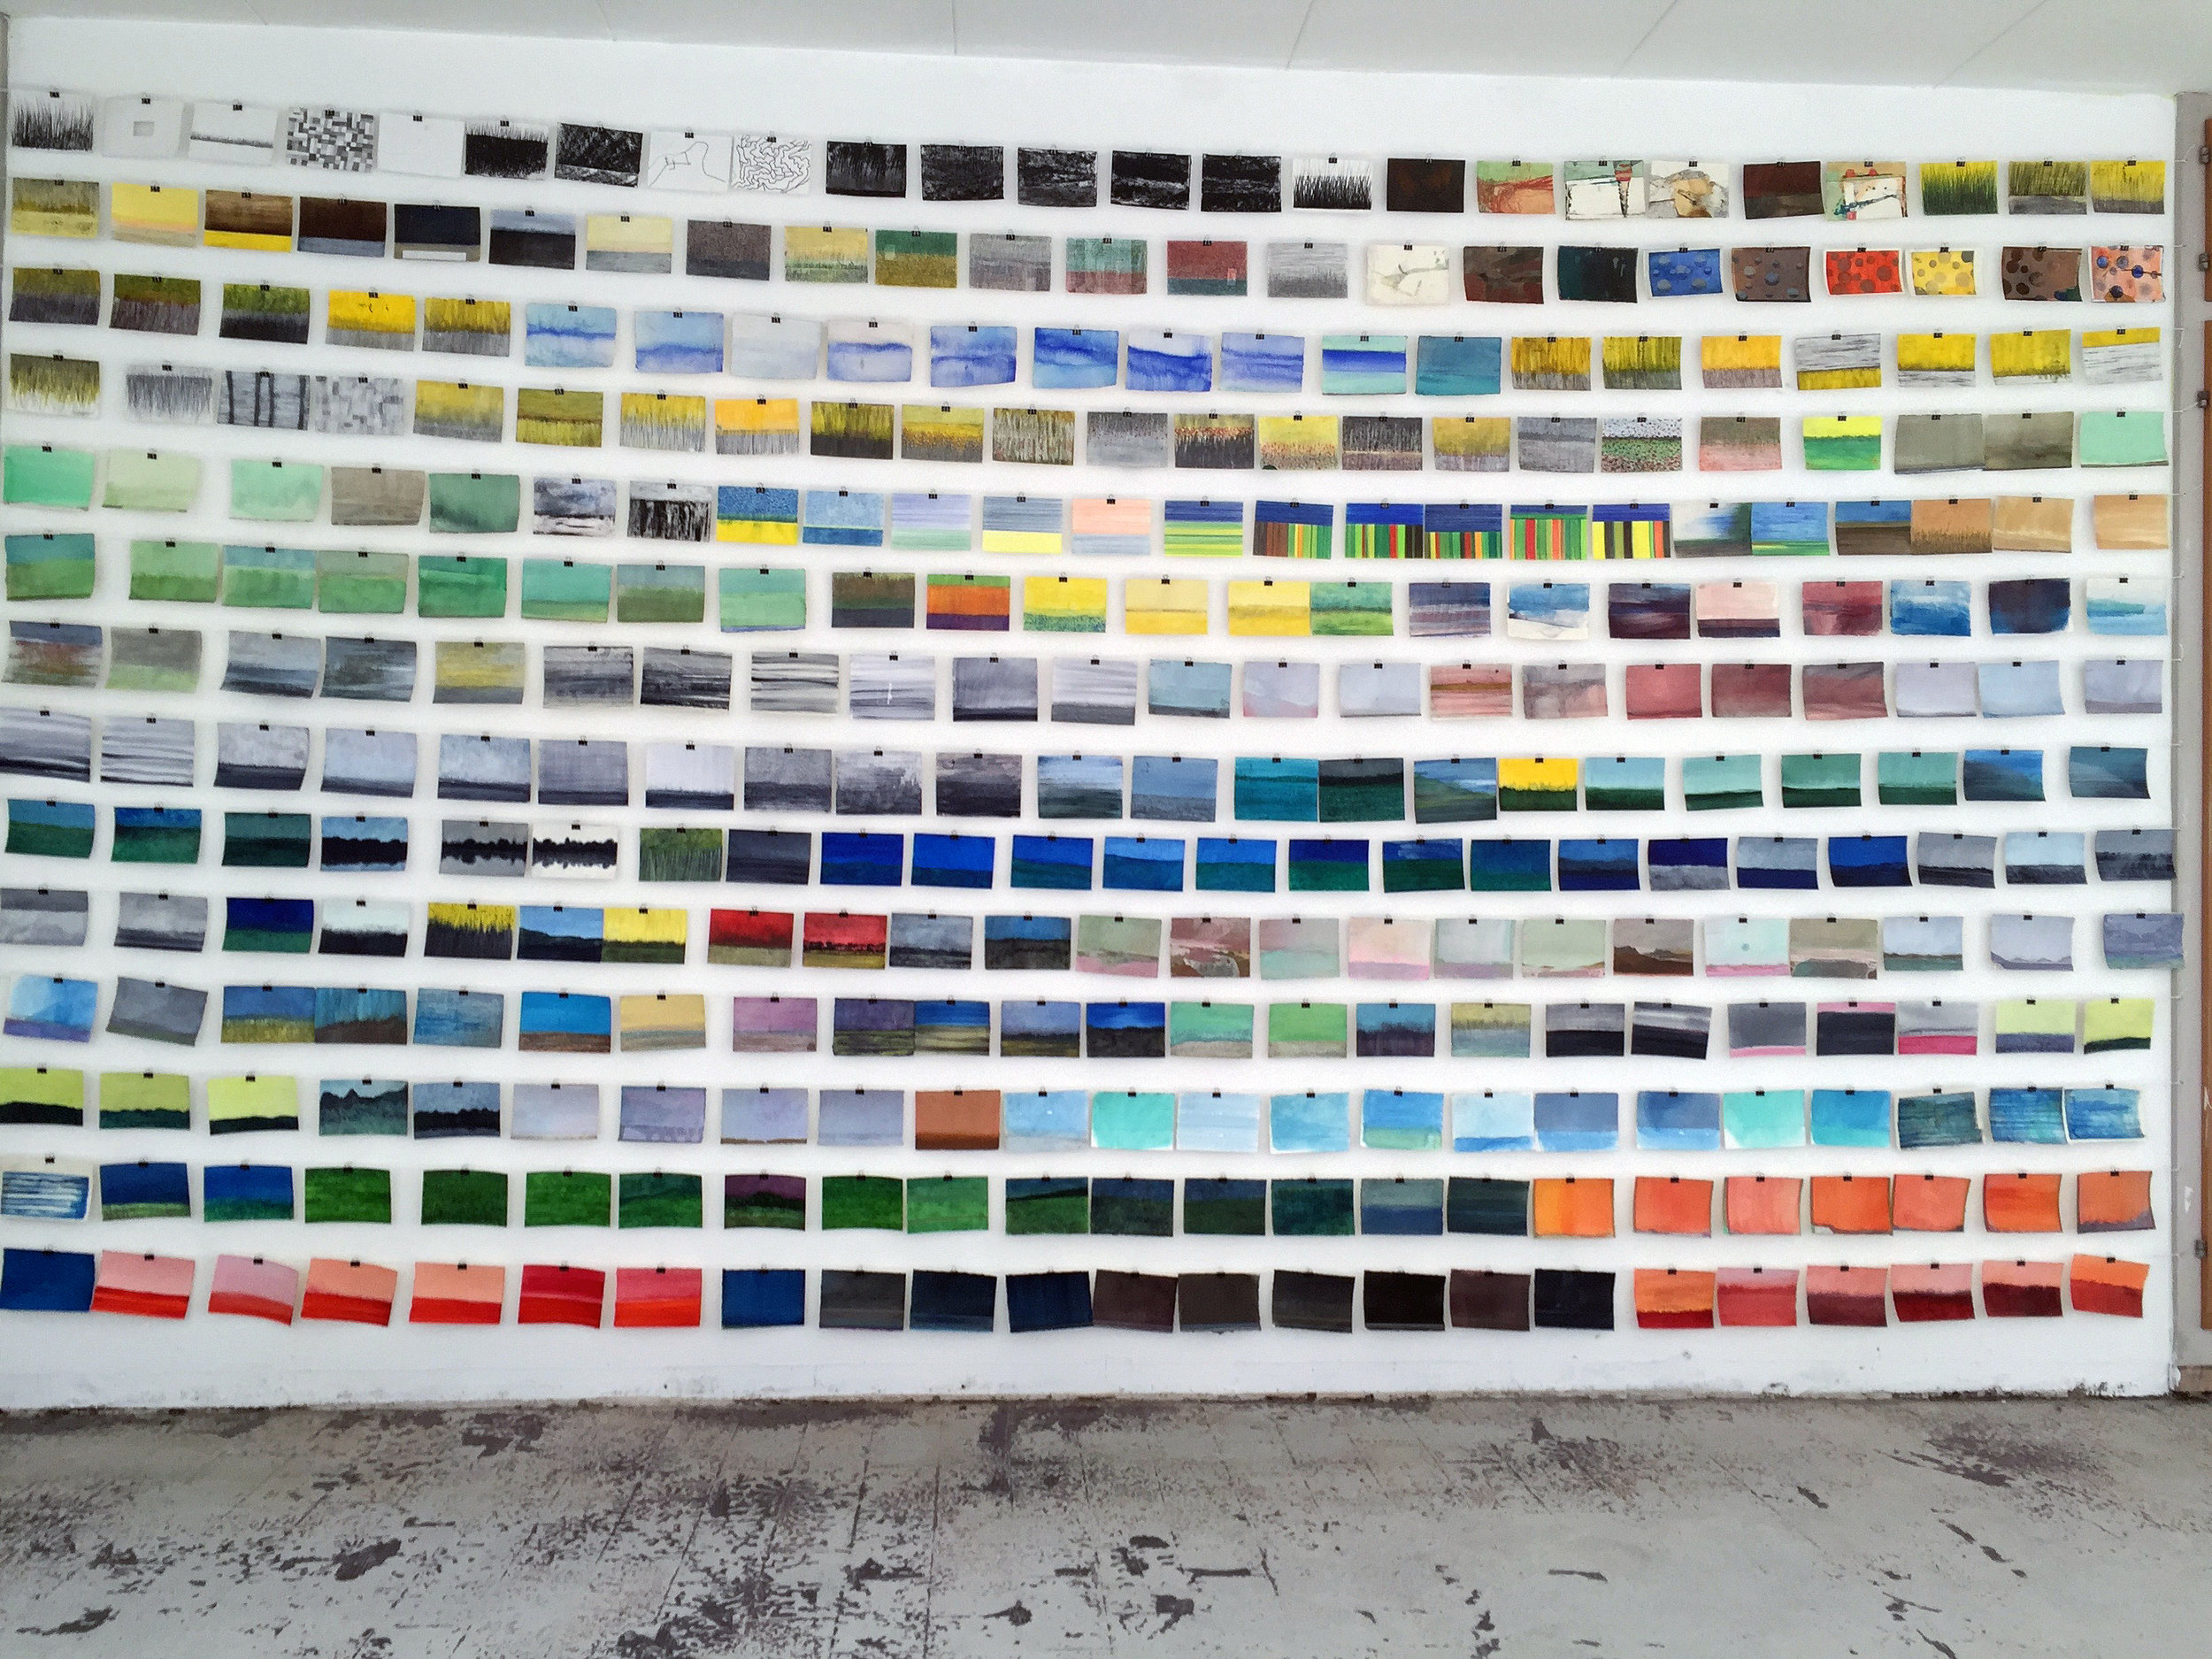 The postcards displayed at Carrosserie Basel May 2016